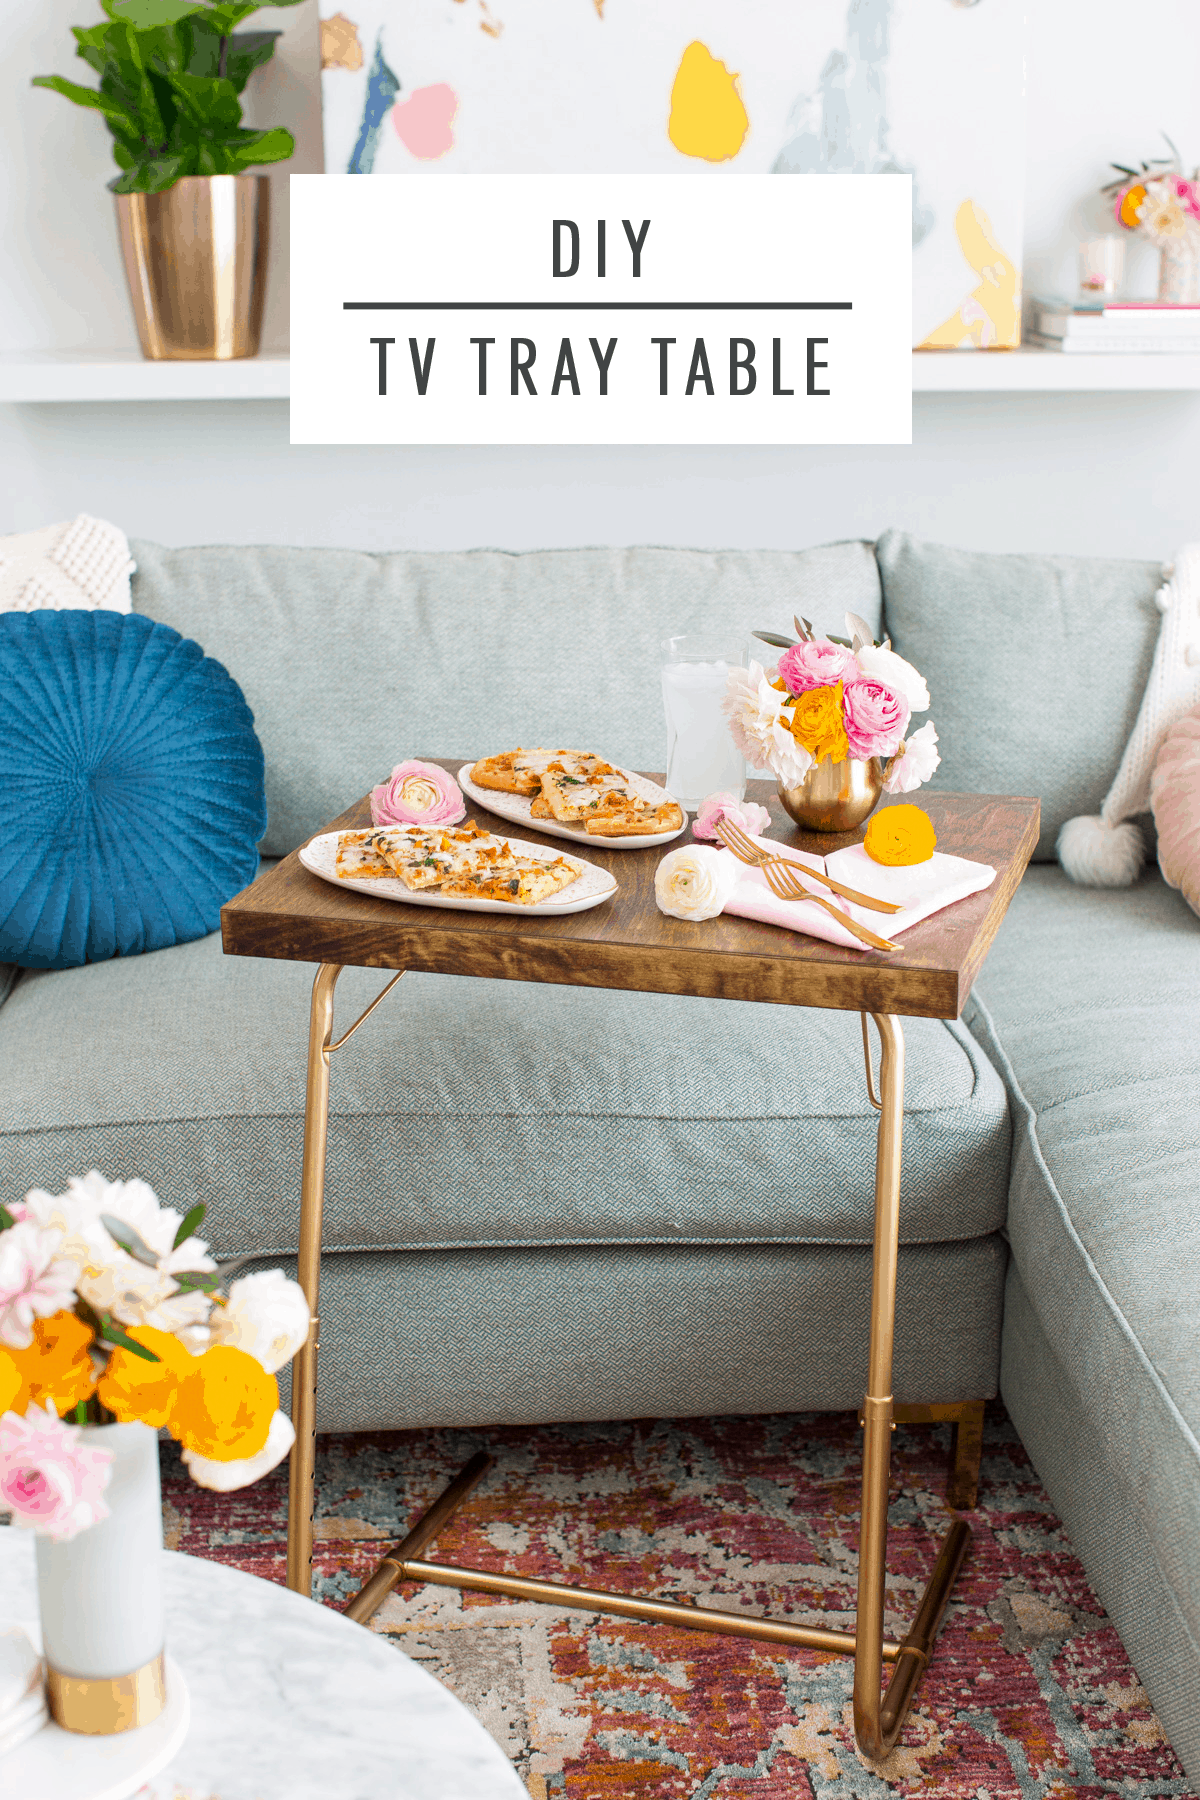 Date Night In: DIY TV Tray Table & Folded Heart Napkins ...